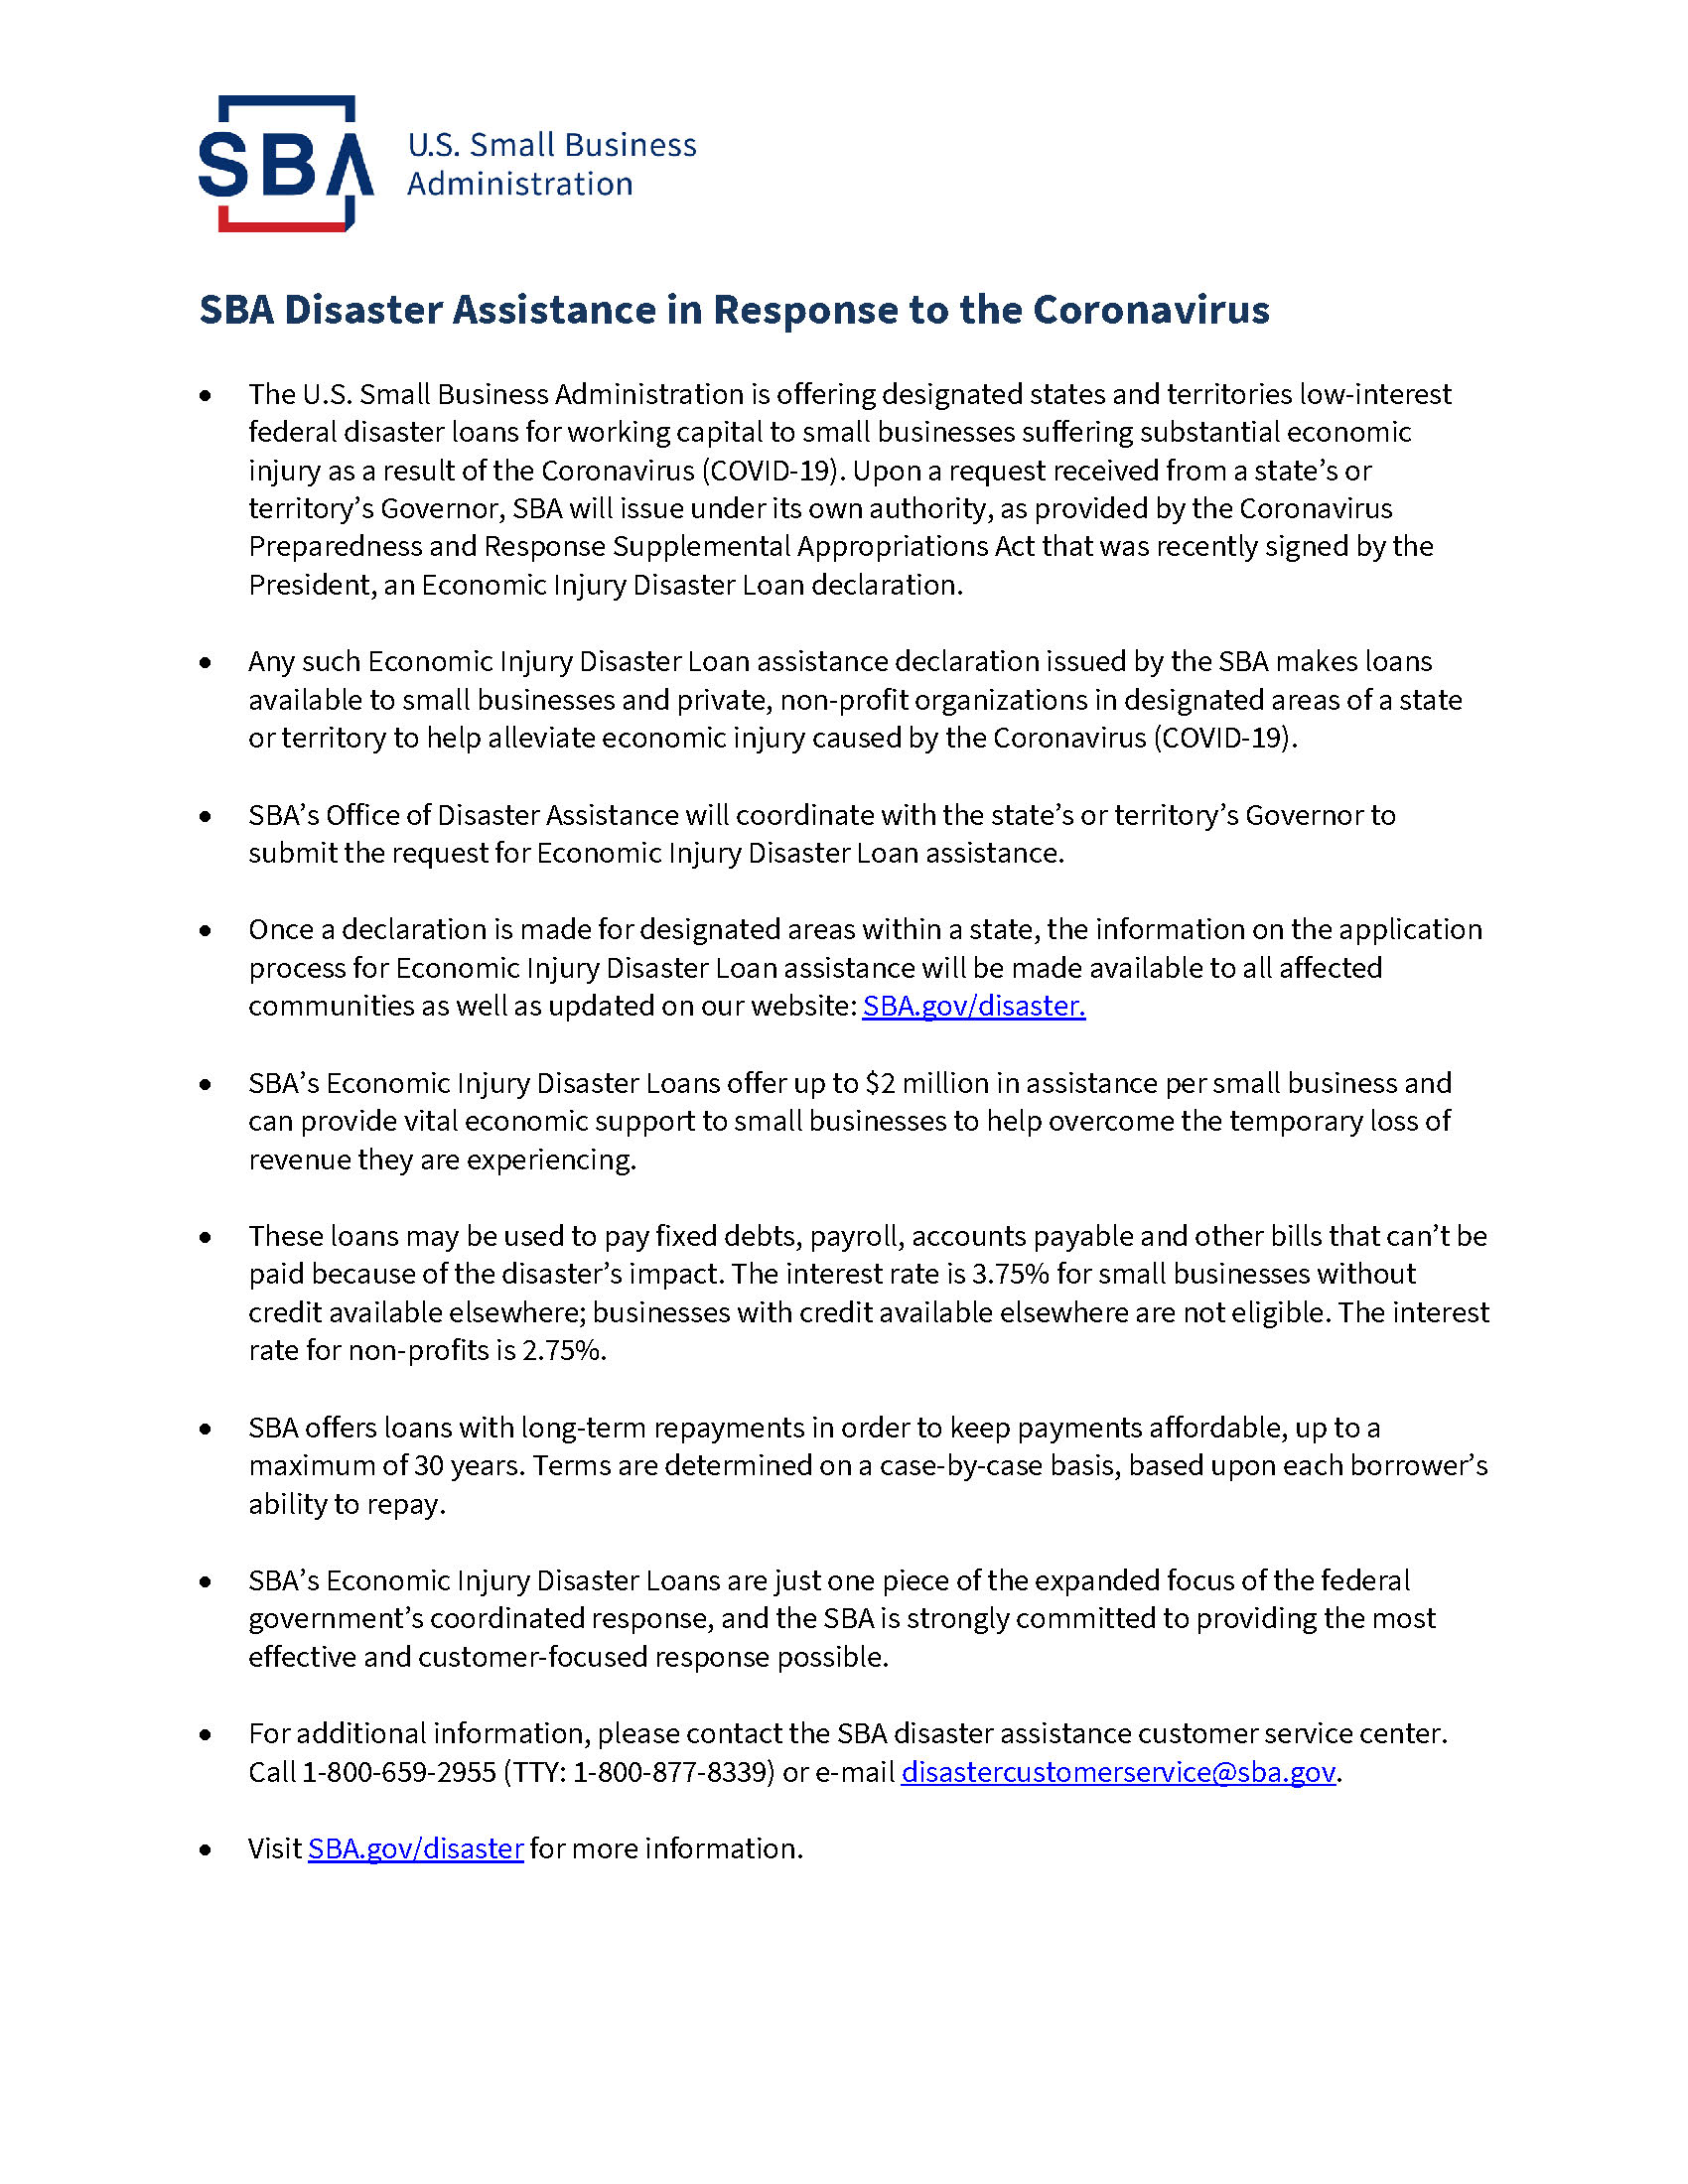 SBA disaster assistance P2